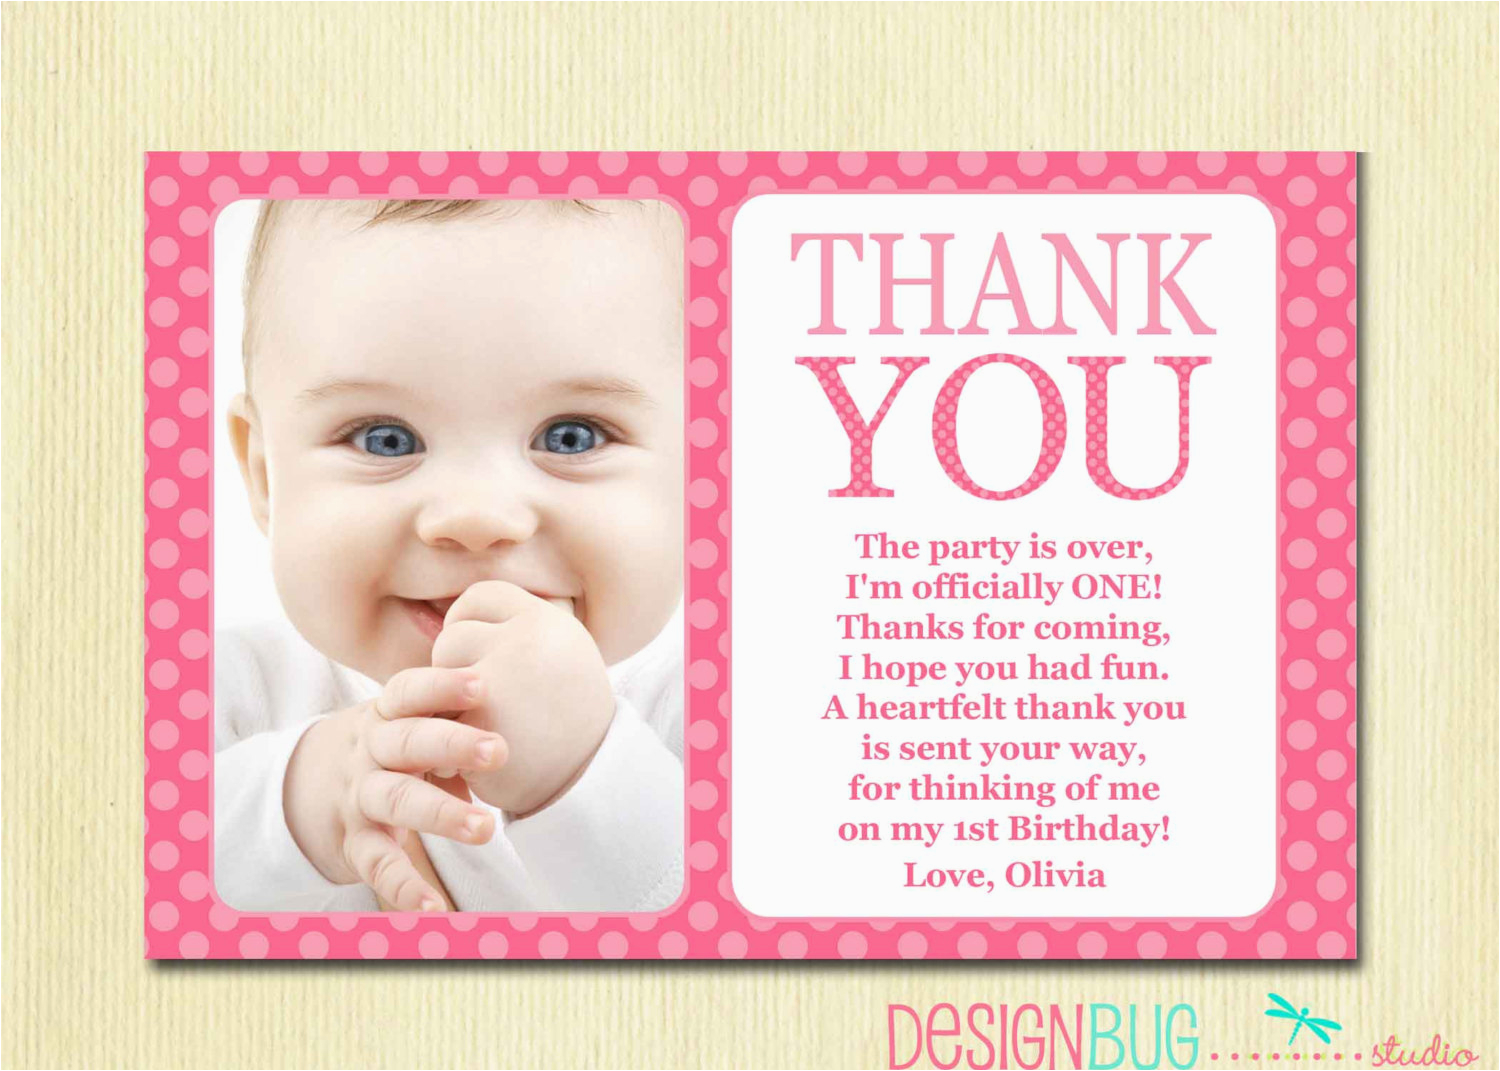 Thank You Card after Birthday Party First Birthday Matching Thank You Card 4×6 the Big One Diy